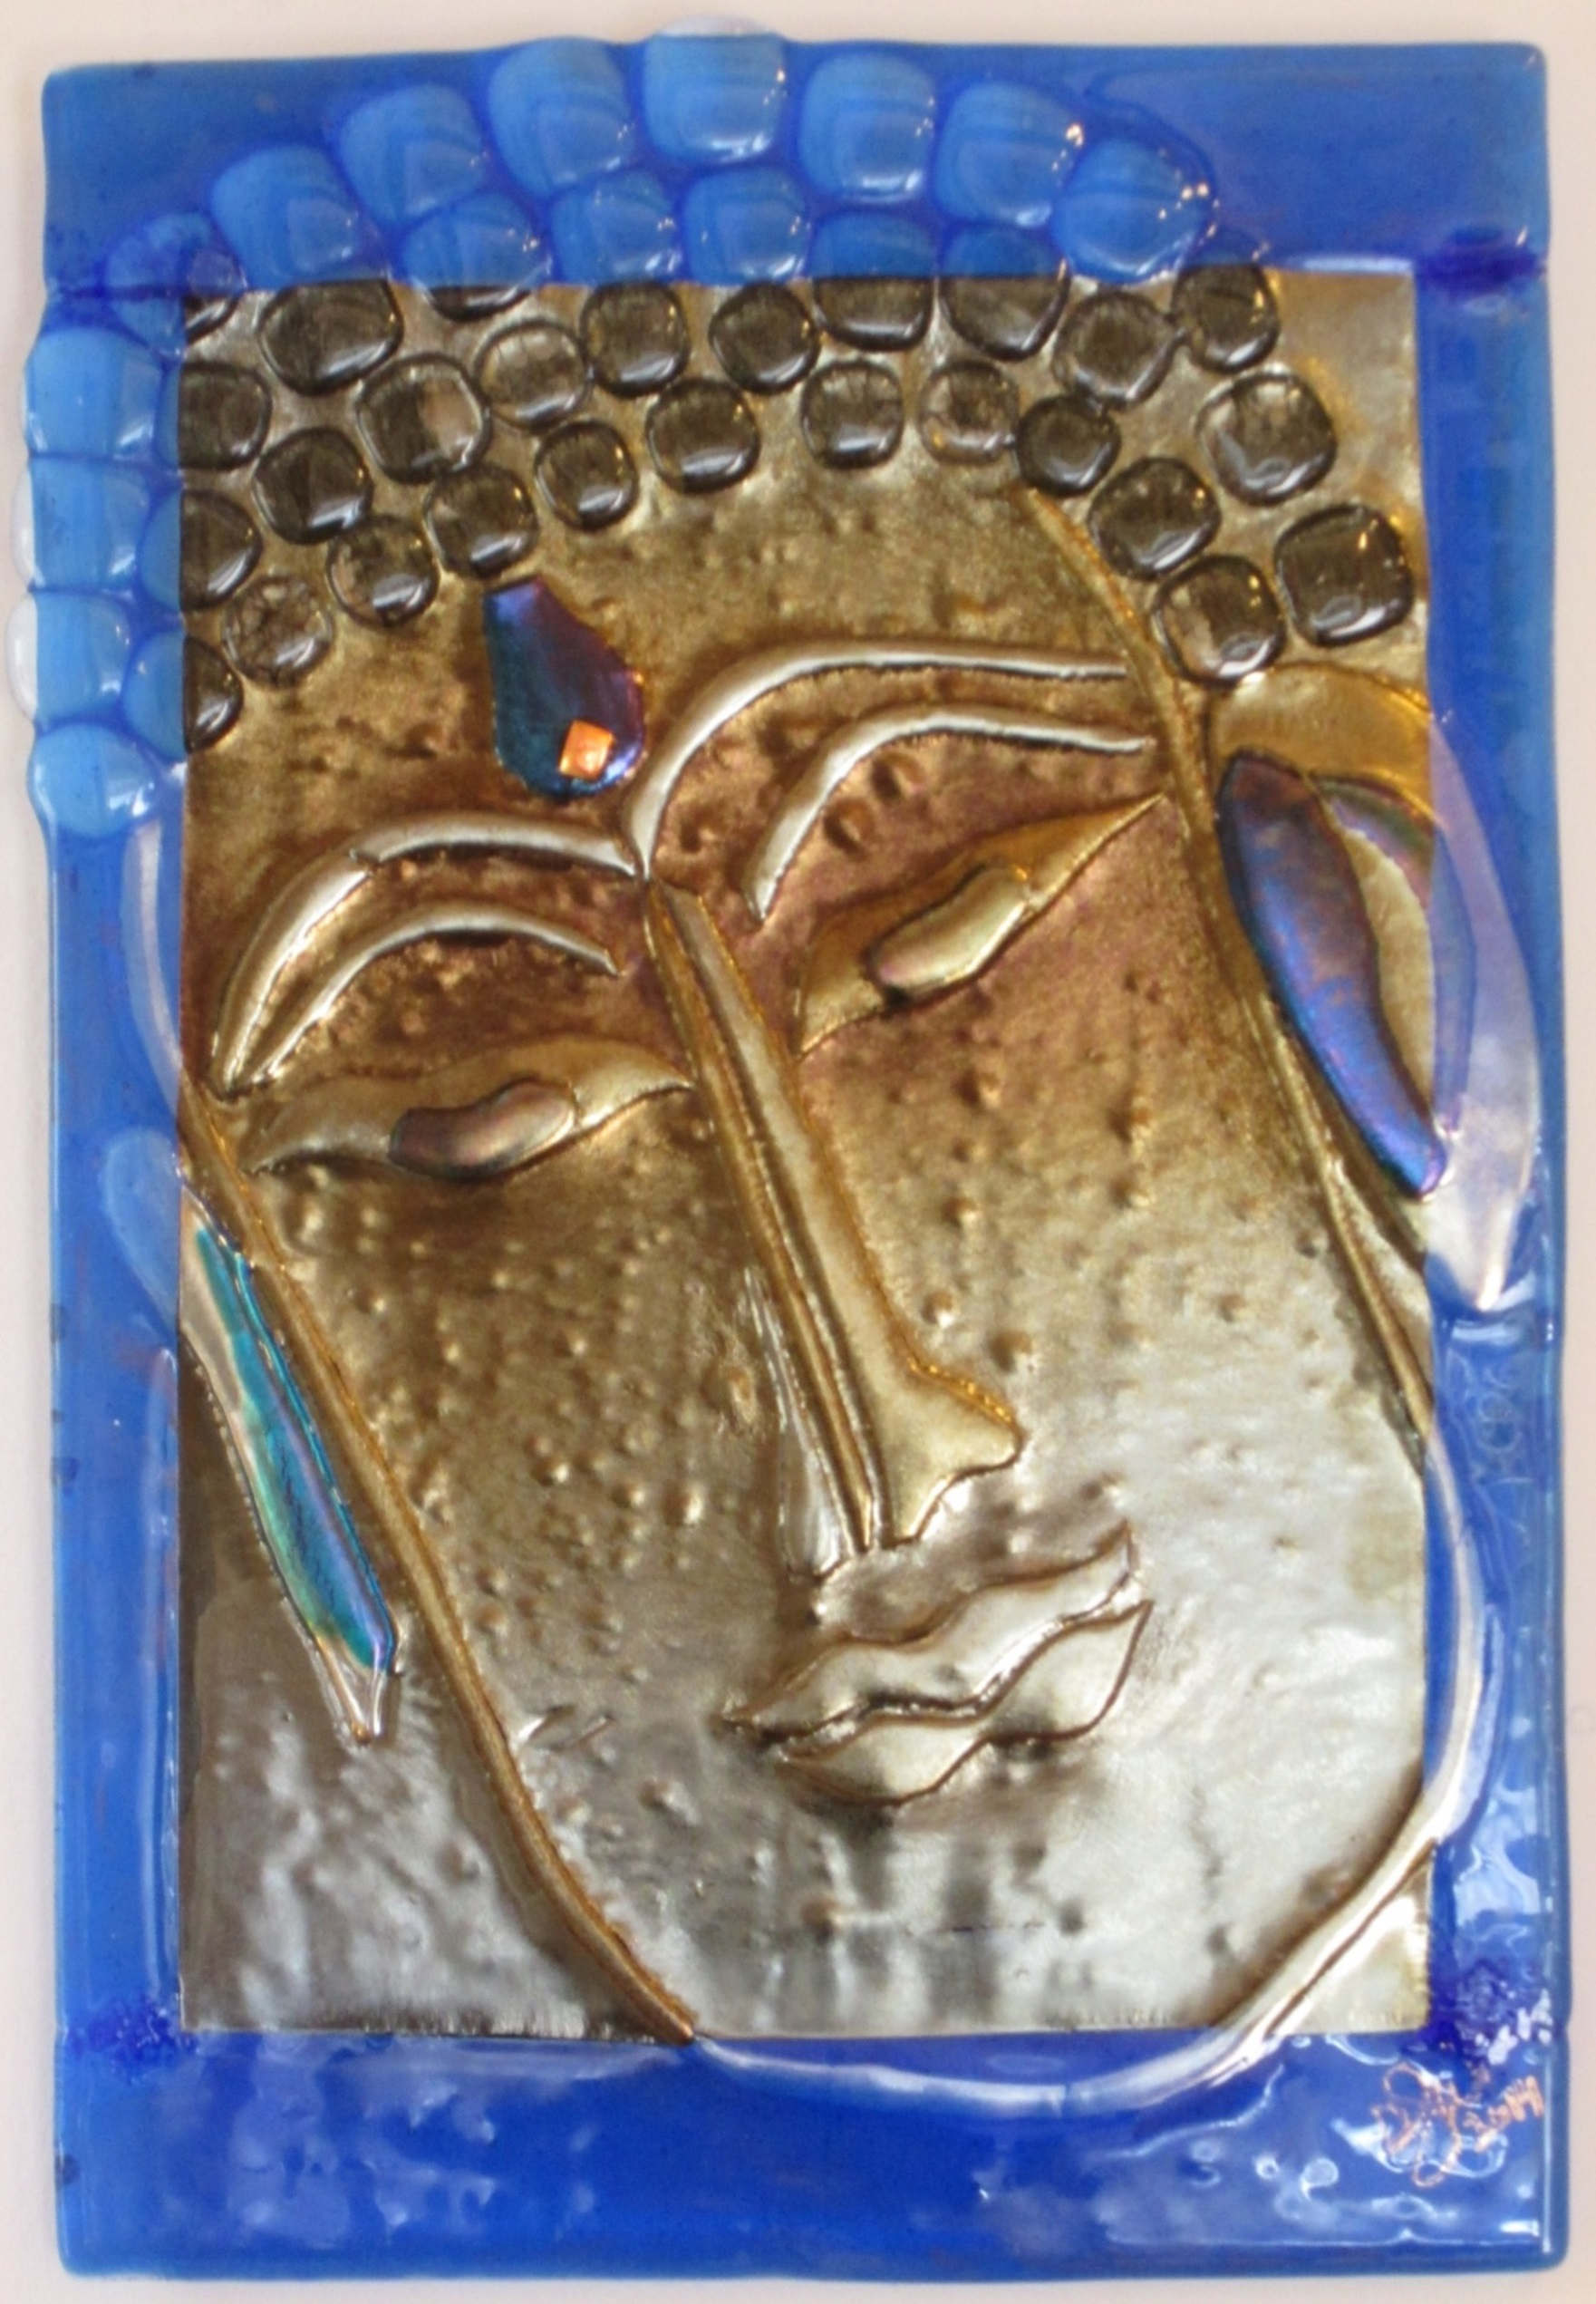 A compassionate Buddha, created by Jill Whitmore of kiln-formed glass, sometimes in six layers